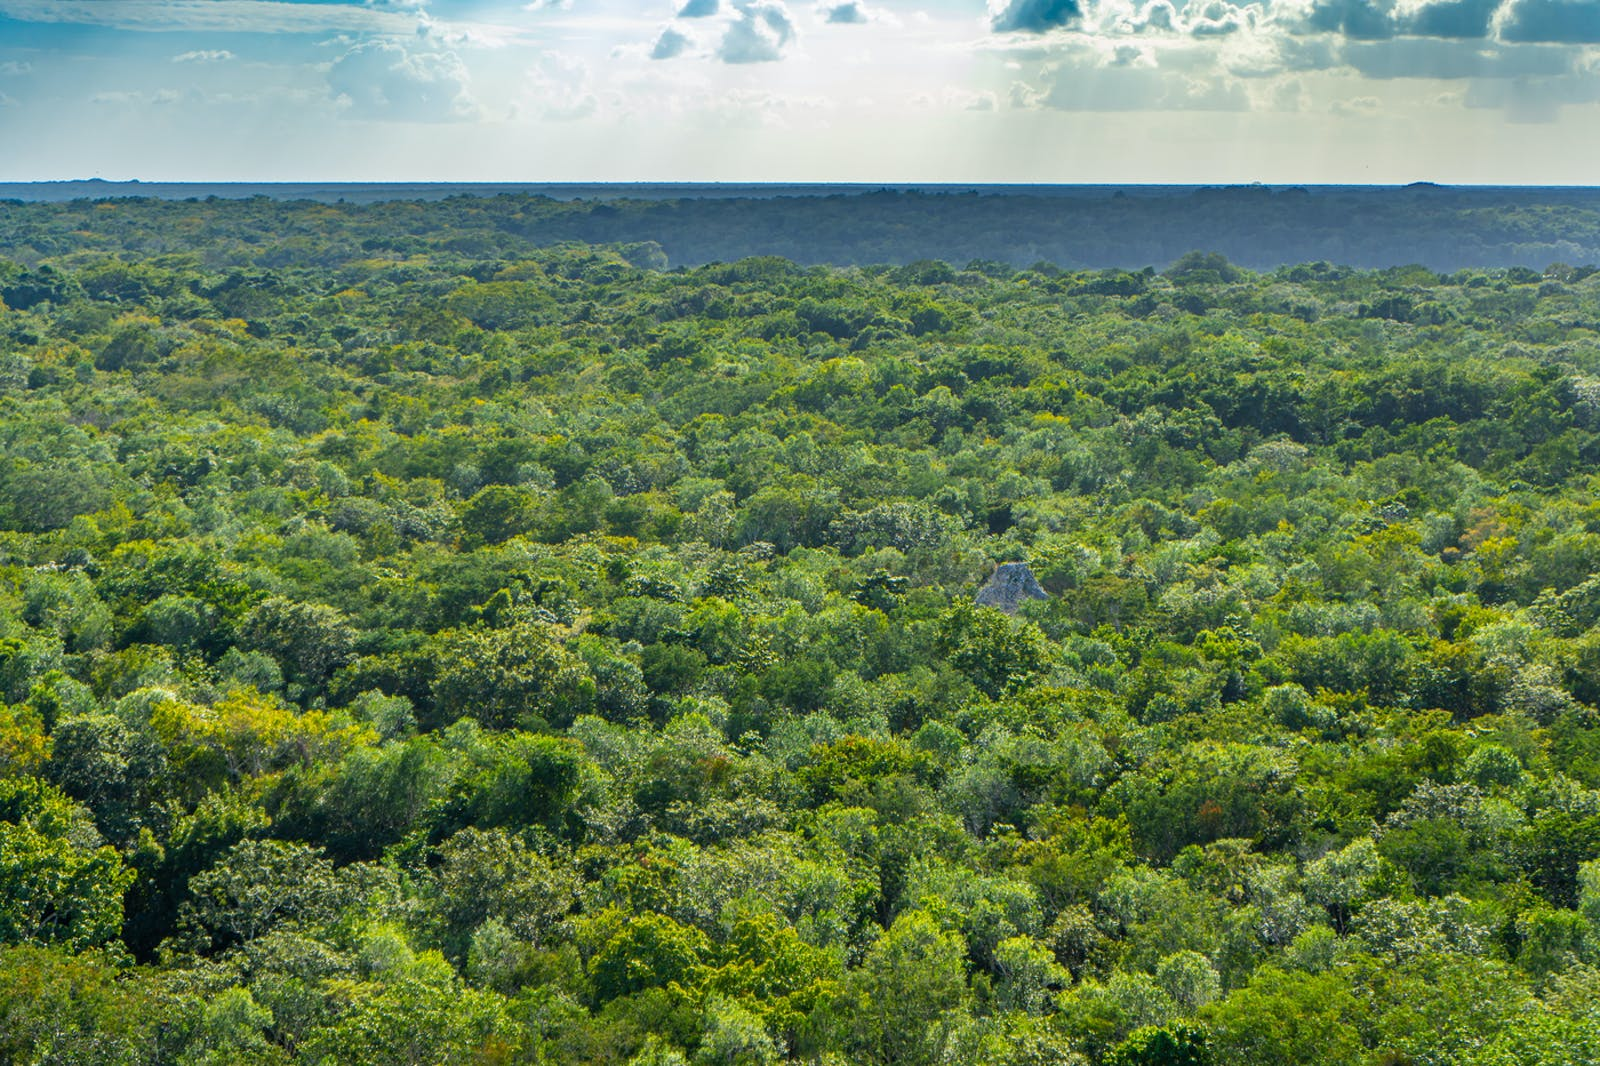 Yucatan Dry Forests